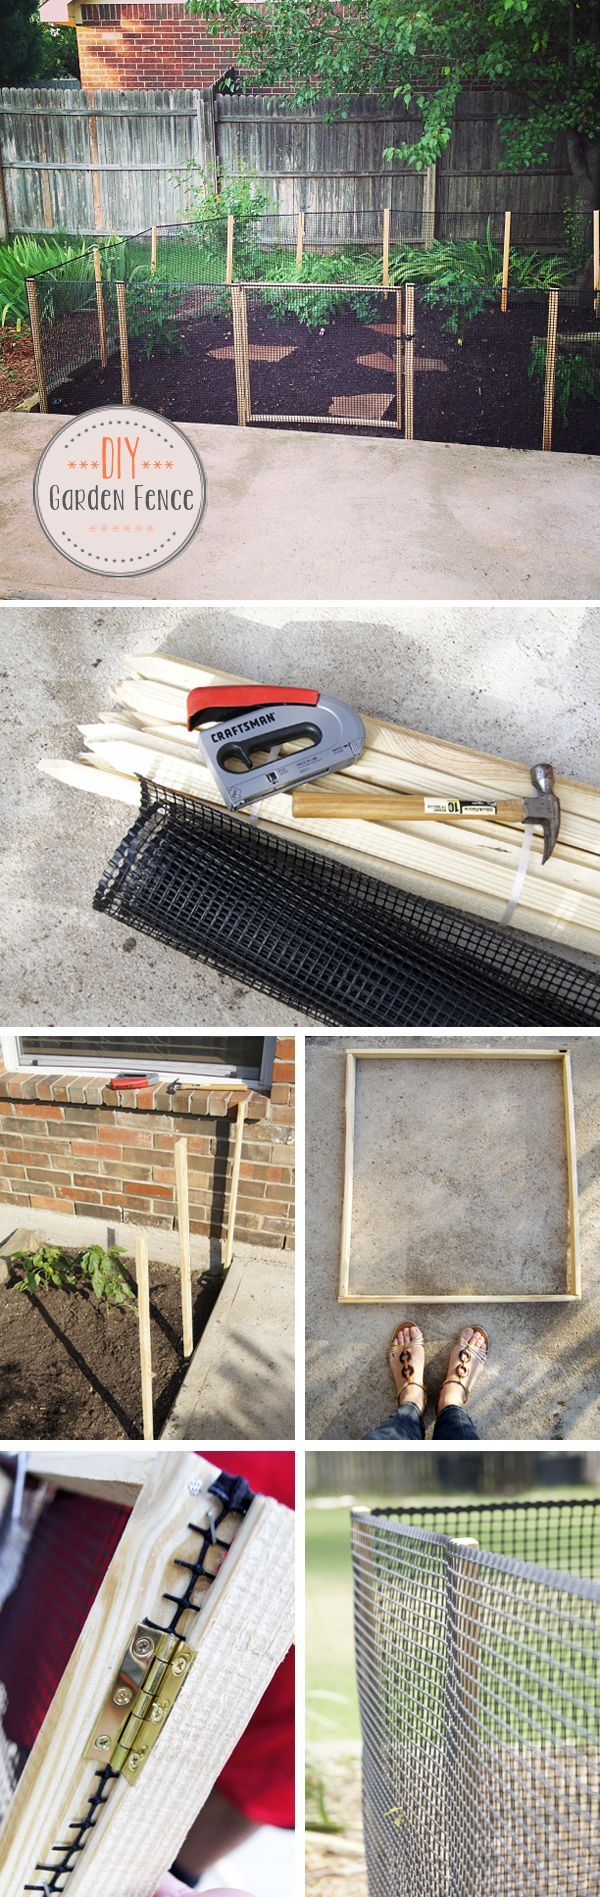 Questions about the recycled plastic raised garden bed 3 x 6 x 11 quot - Diy How To Make A Garden Fence Oh Everything Handmade Llc